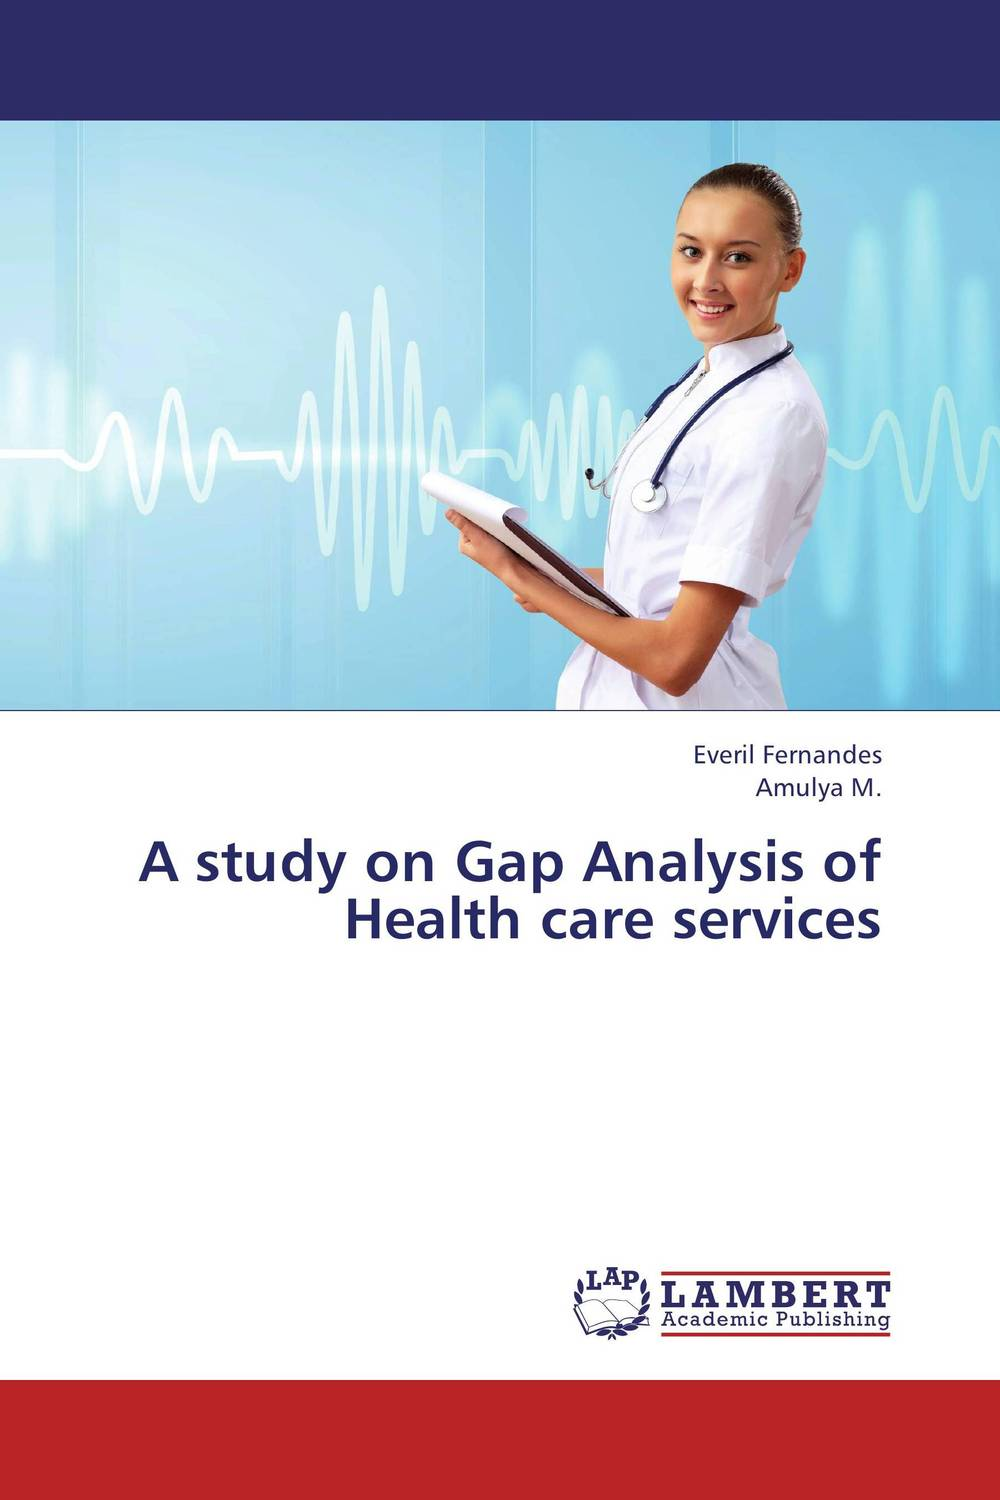 A study on Gap Analysis of Health care services prostate health devices is prostate removal prostatitis mainly for the prostate health and prostatitis health capsule